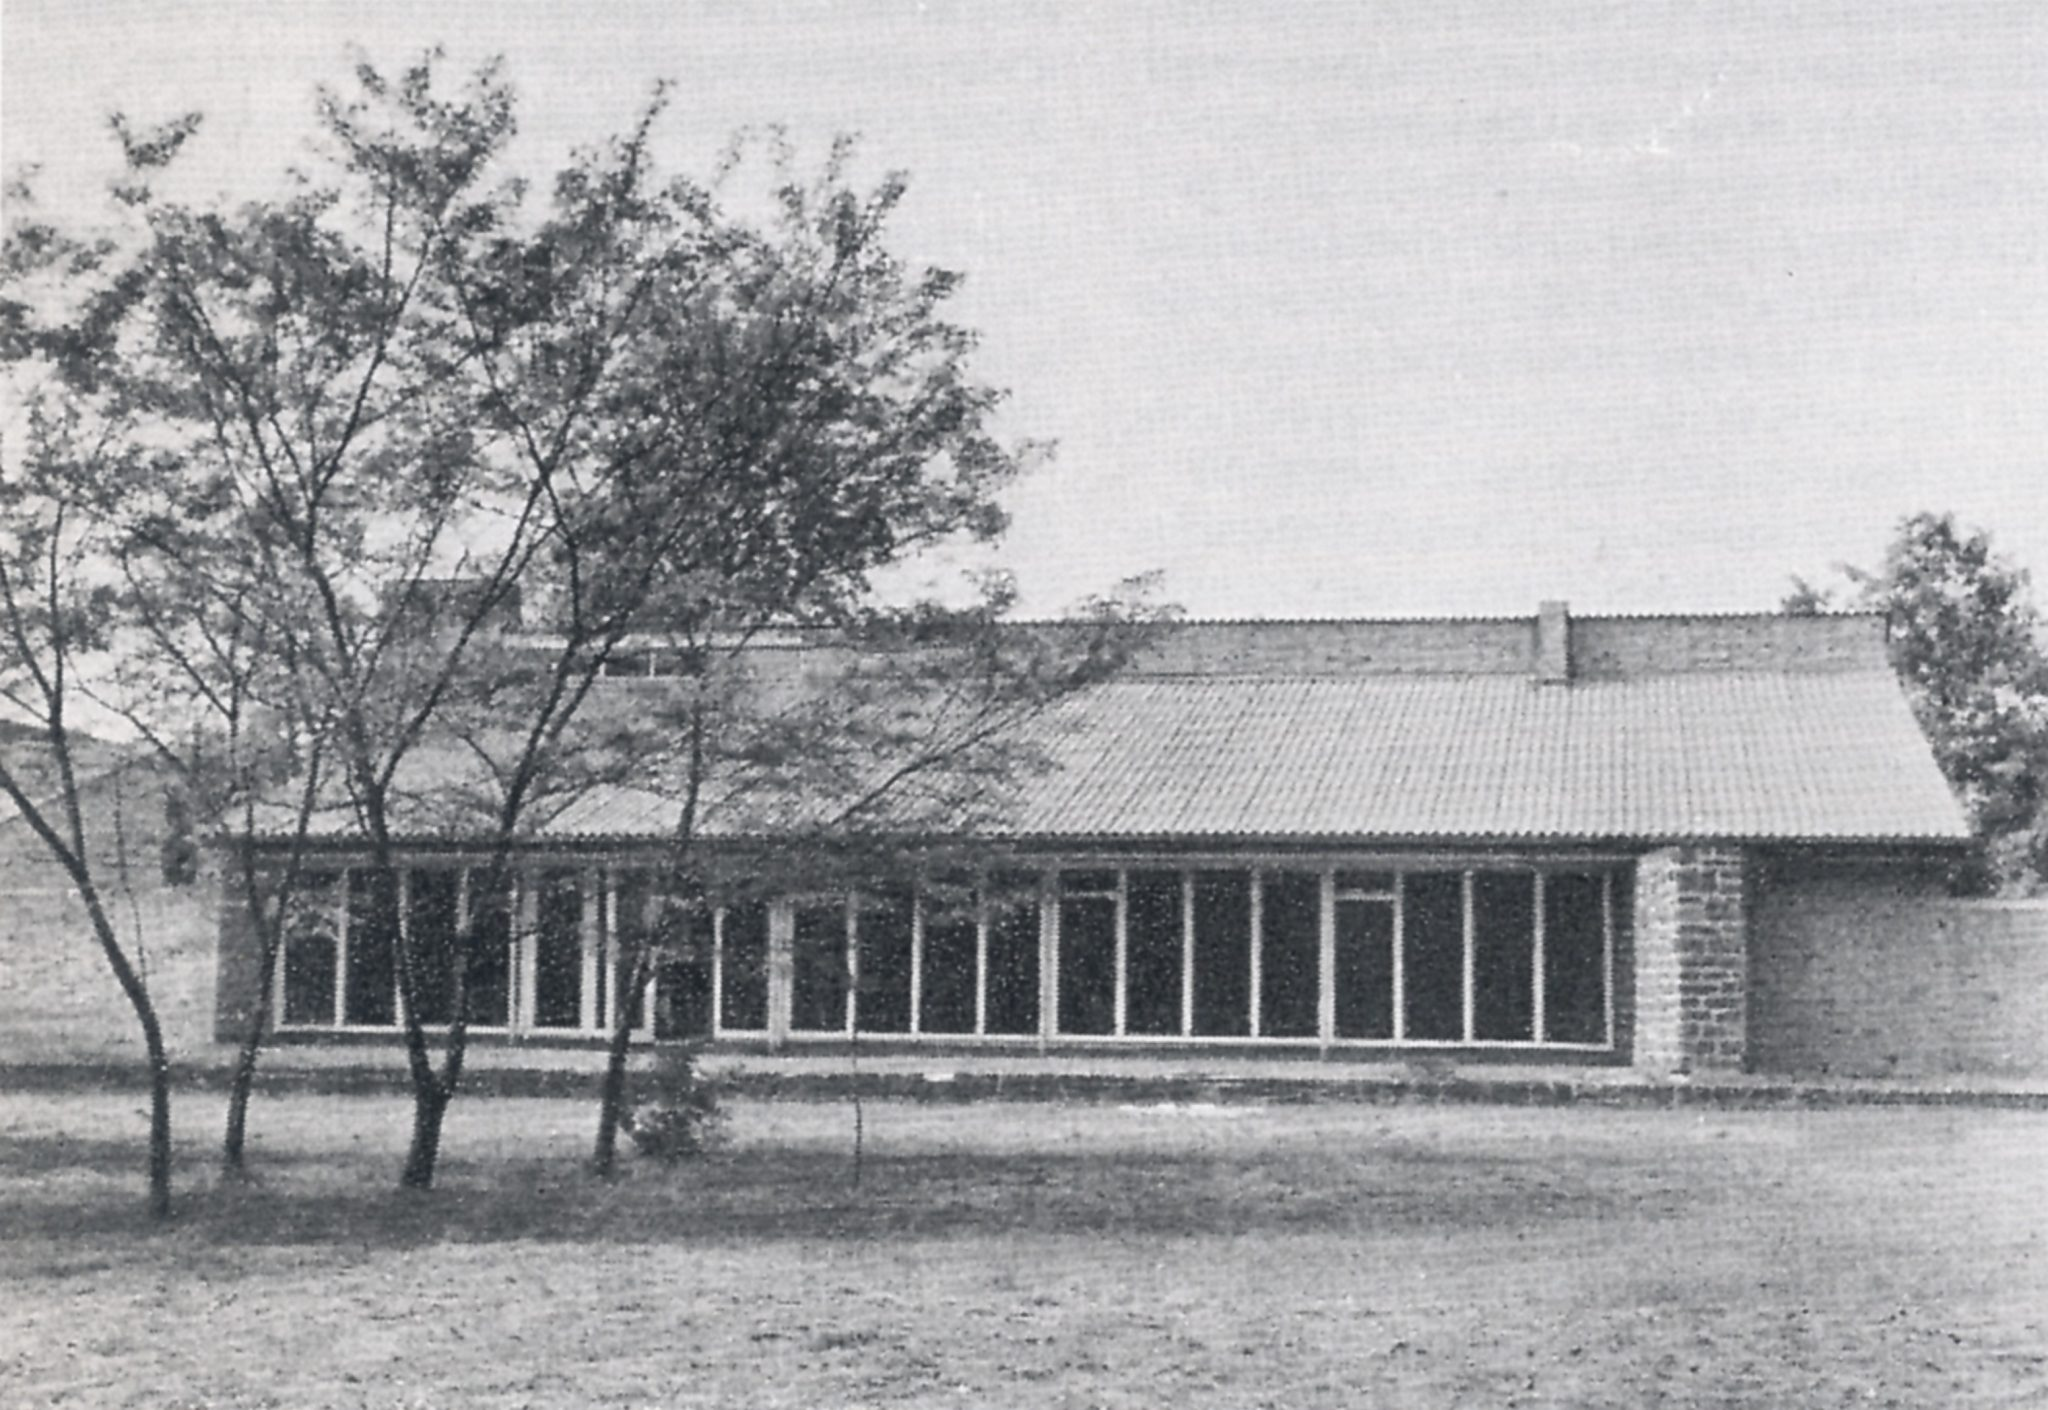 Clubhaus des Internationalen Studentenheims Eichkamp, 1949/49